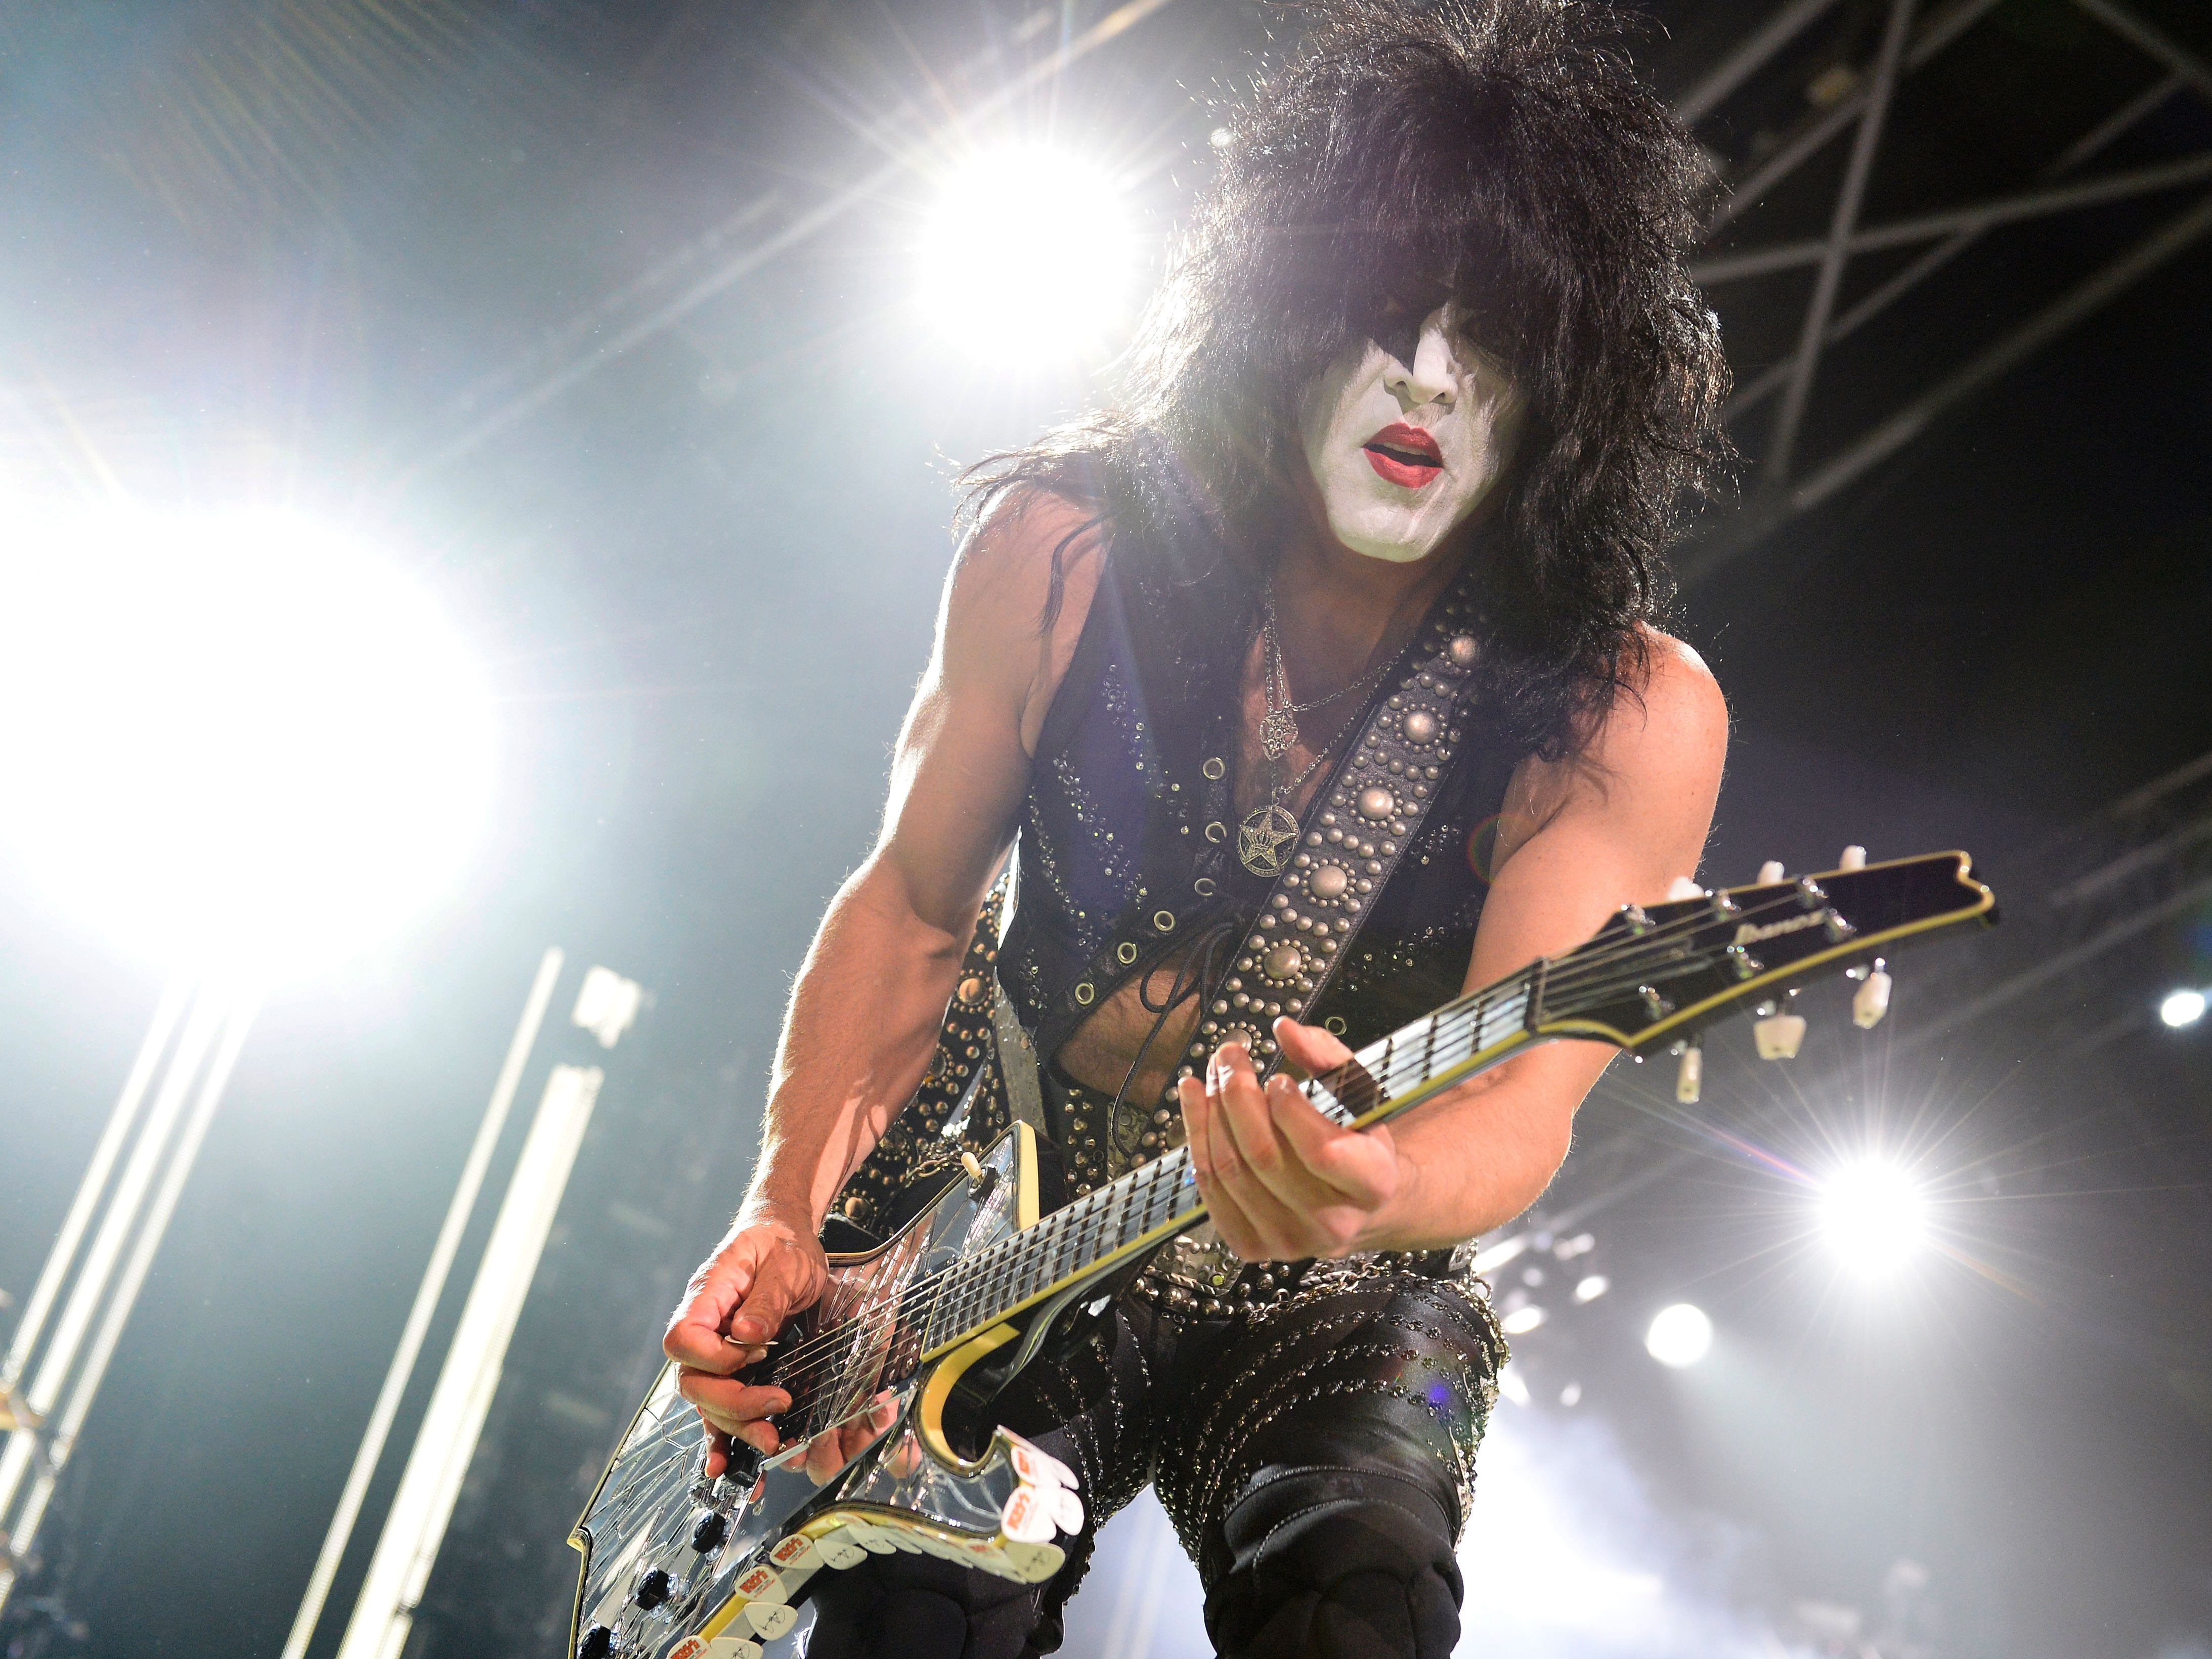 US singer and guitarist Paul Stanley of US rock band Kiss performs on stage at the Zenith in Paris on June 16, 2015. AFP PHOTO / BERTRAND GUAY / AFP / BERTRAND GUAY        (Photo credit should read BERTRAND GUAY/AFP/Getty Images)